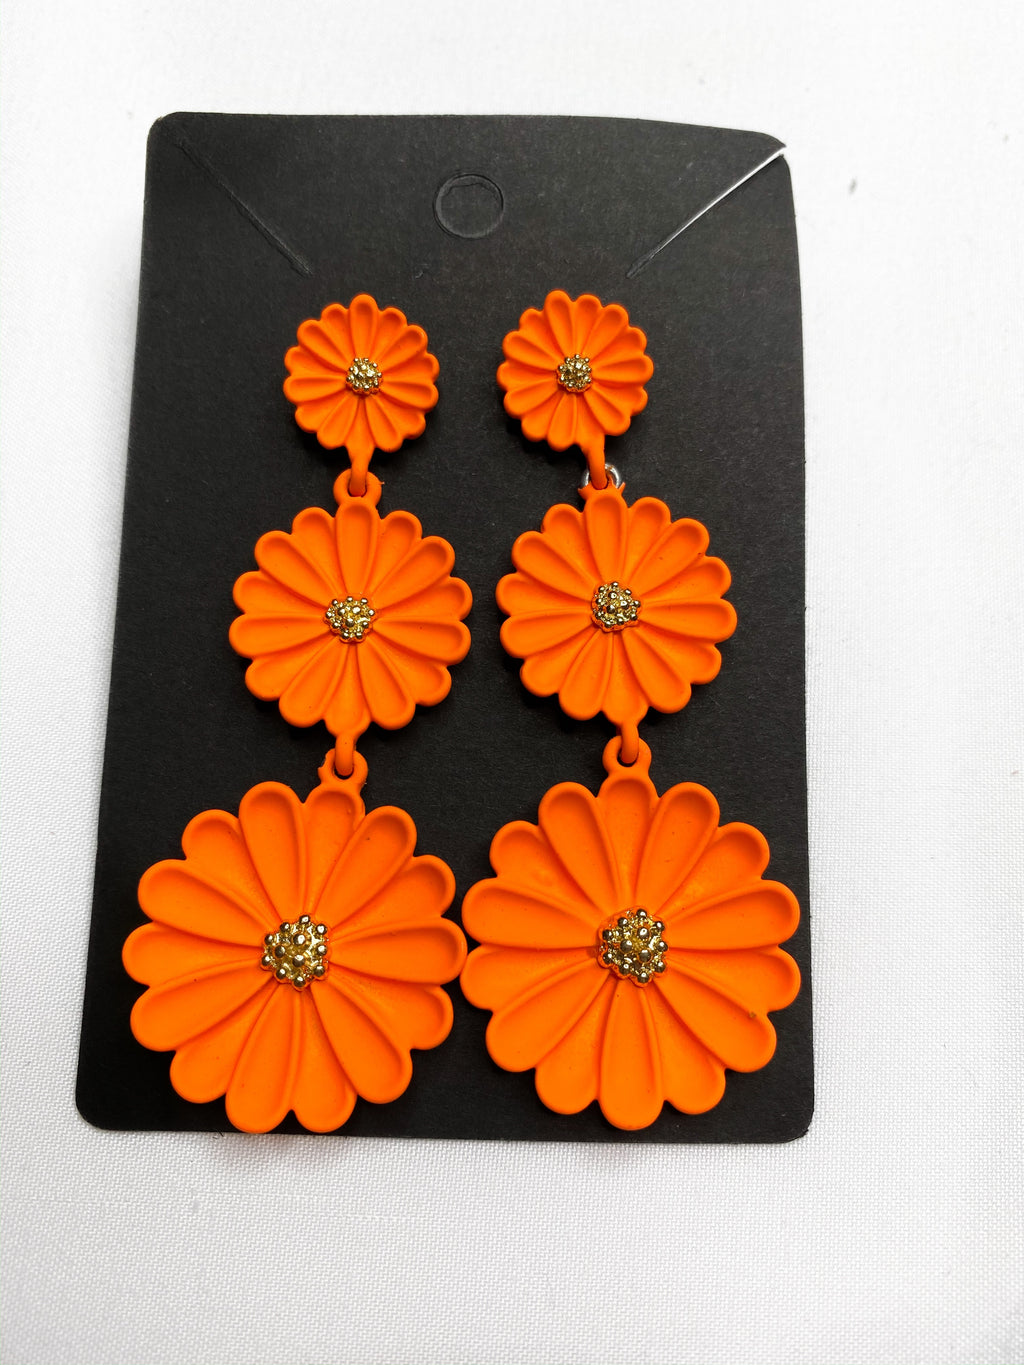 Neon Orange Flower Earrings